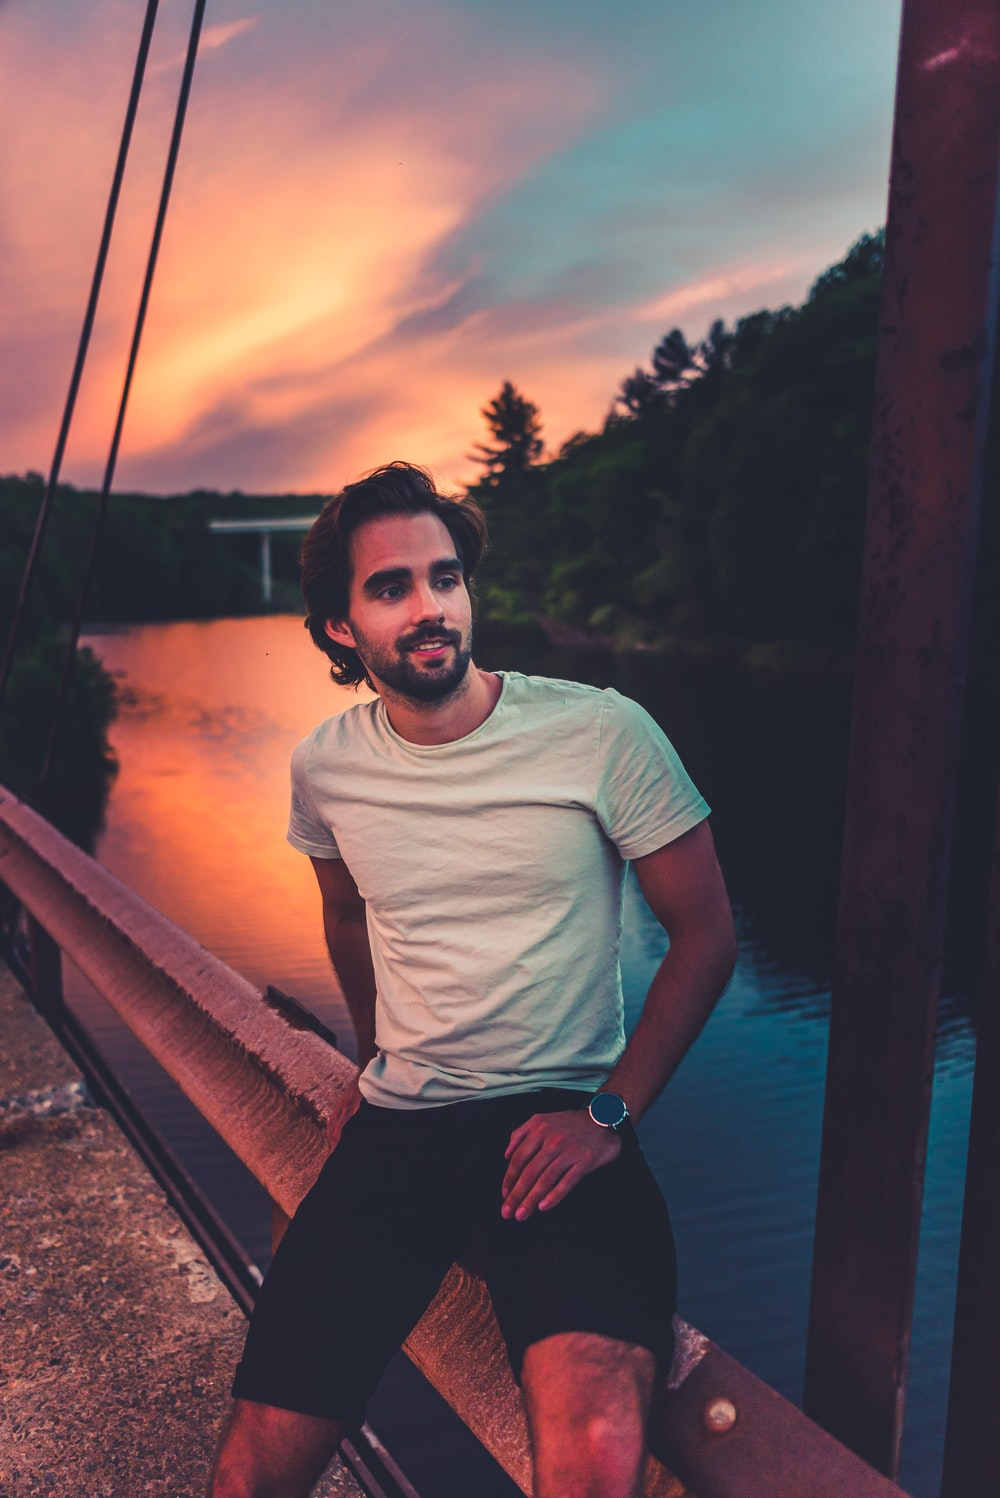 man in white crew neck t-shirt and black shorts standing on brown wooden bridge during